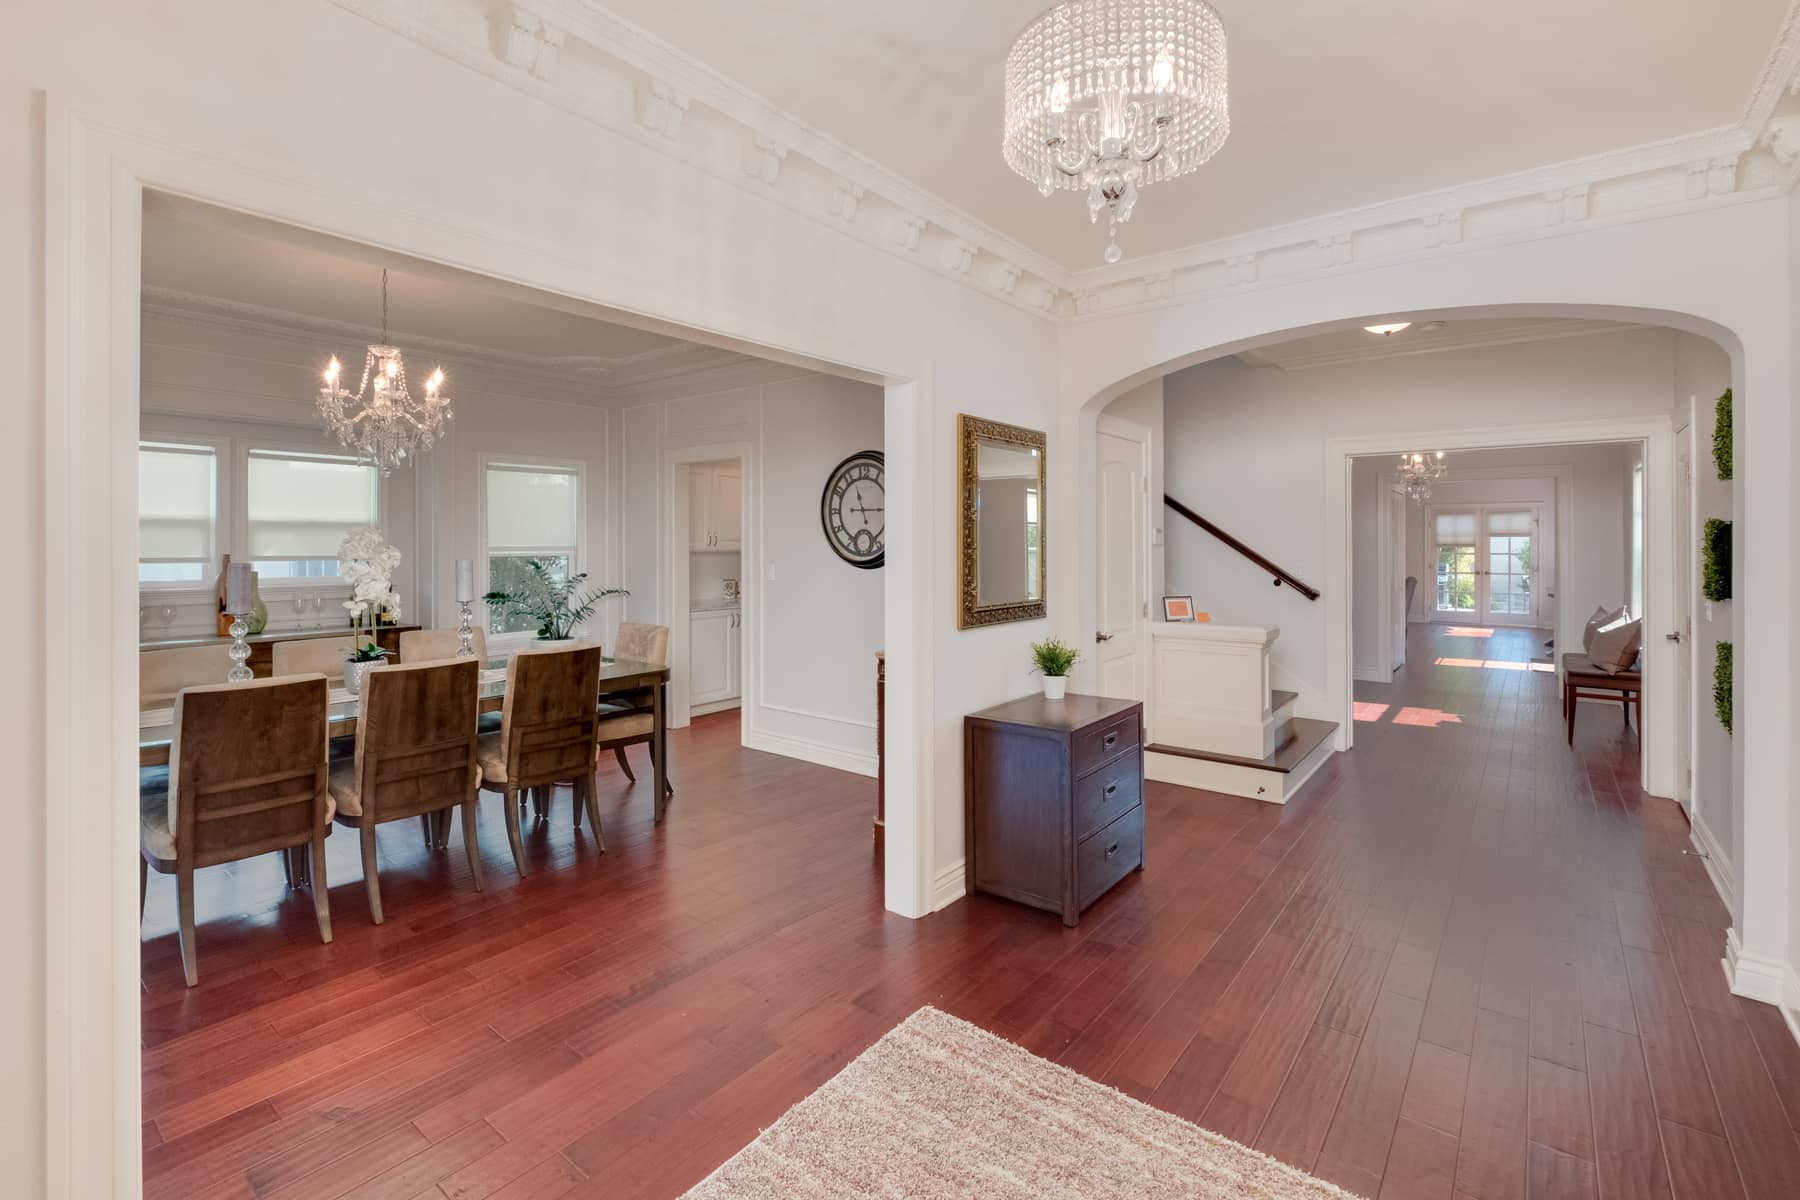 The elegance of this 1918 Traditional is perfectly complemented by 21st century amenities. The first thing you notice as you step through the double front doors and into the spacious foyer is the ornate cornice work overhead. And as you peer into the dining room to your left you'll notice a continuation of this, but with a different pattern. It's always a pleasant thing to find a home where this sort of detail has been maintained, even after it has undergone a complete renovation, as is the case with this house.